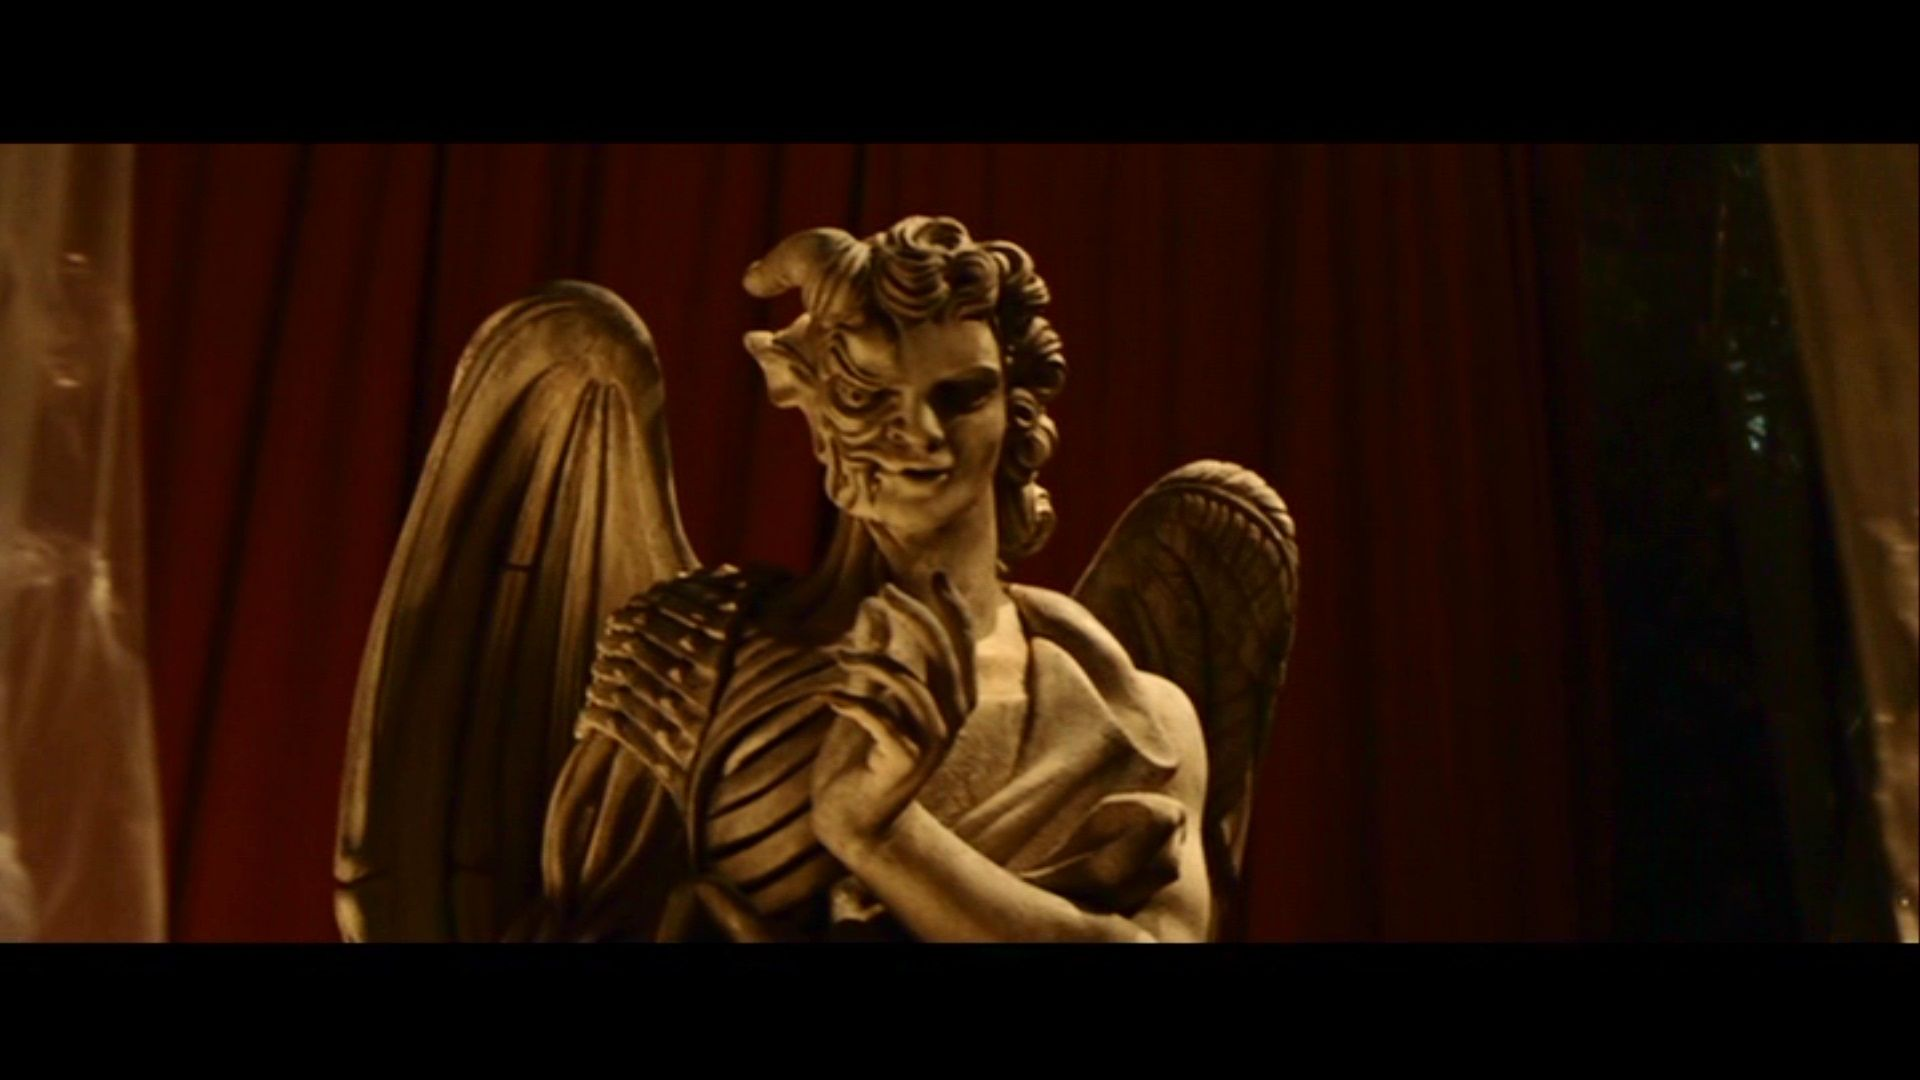 Satanic Art In Color Hd Google Search Angels And Demons Angels And Demons Movie Angel Wallpaper